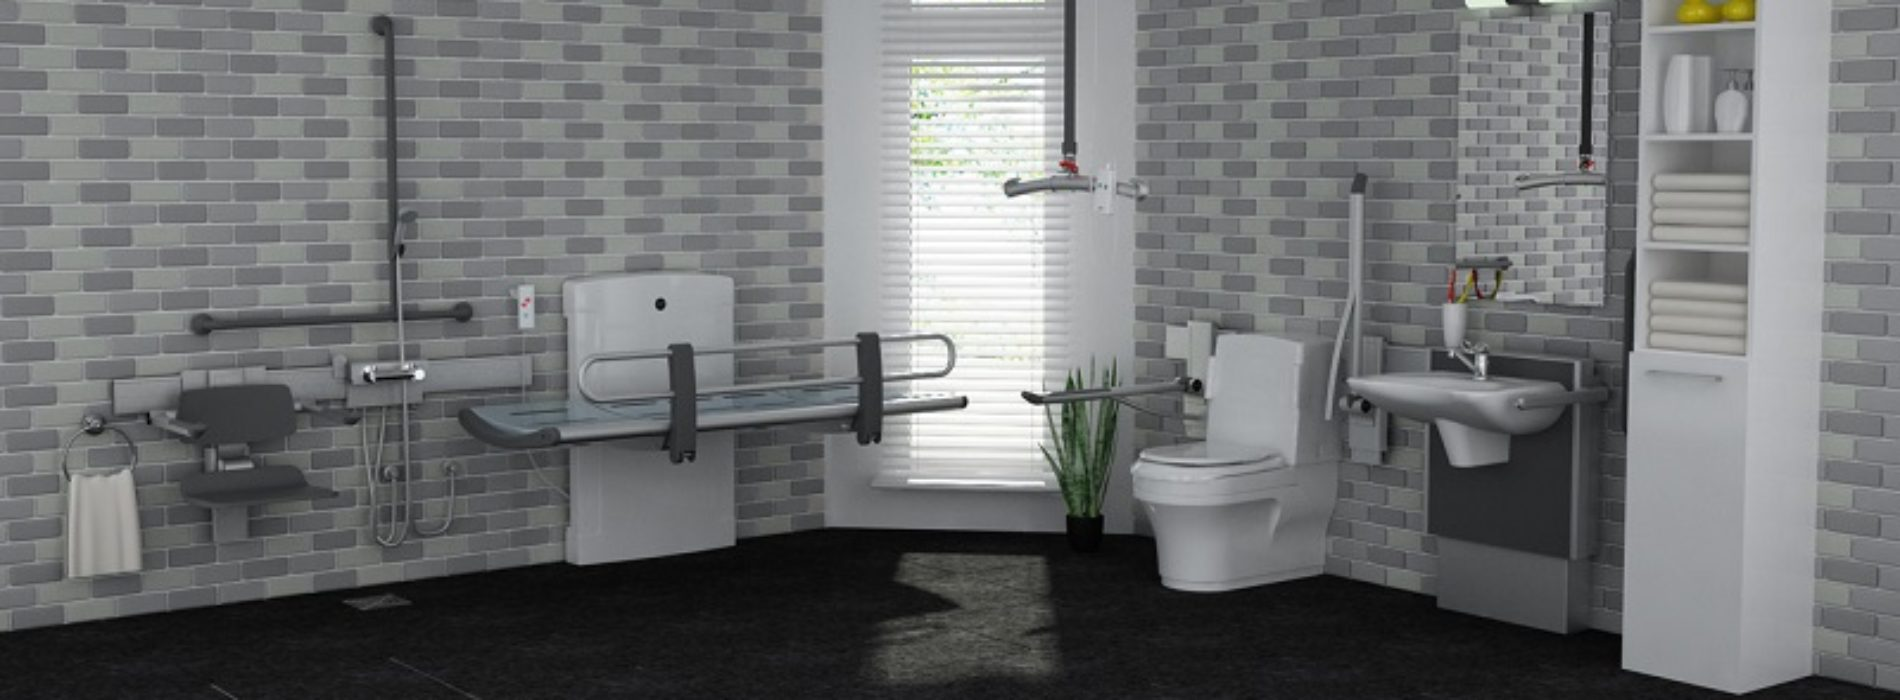 Accessible bathrooms: maintaining your independence and making life that little bit easier